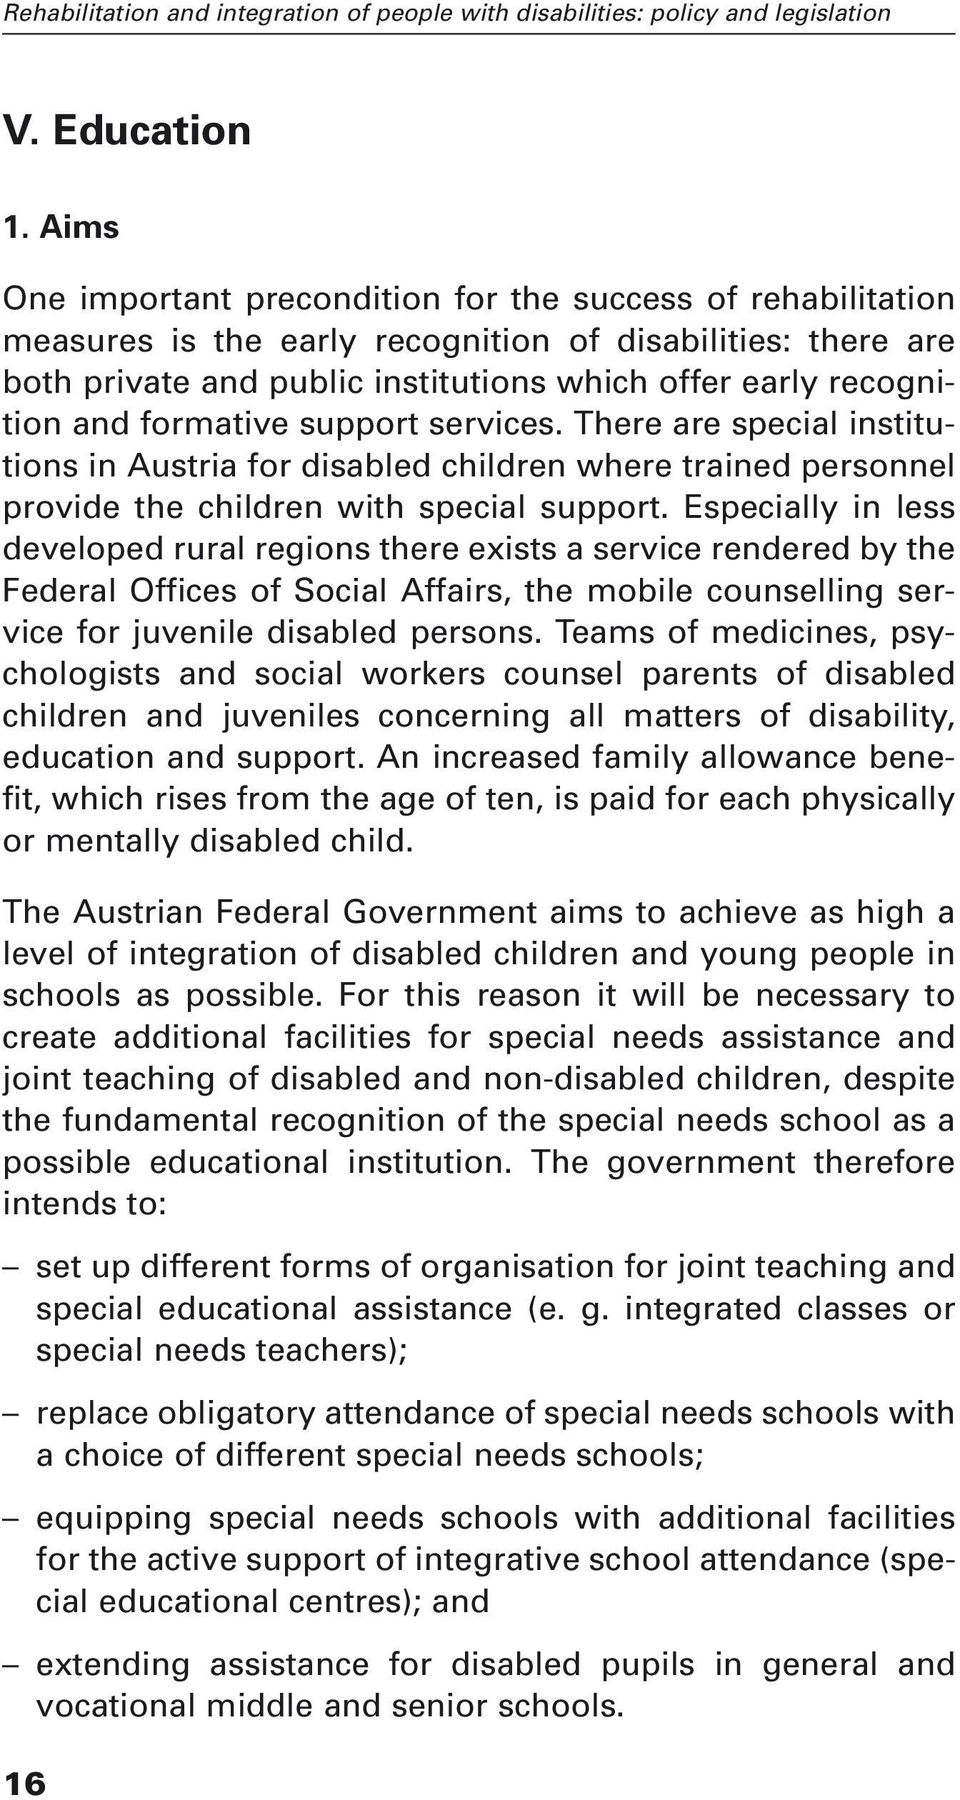 formative support services. There are special institutions in Austria for disabled children where trained personnel provide the children with special support.